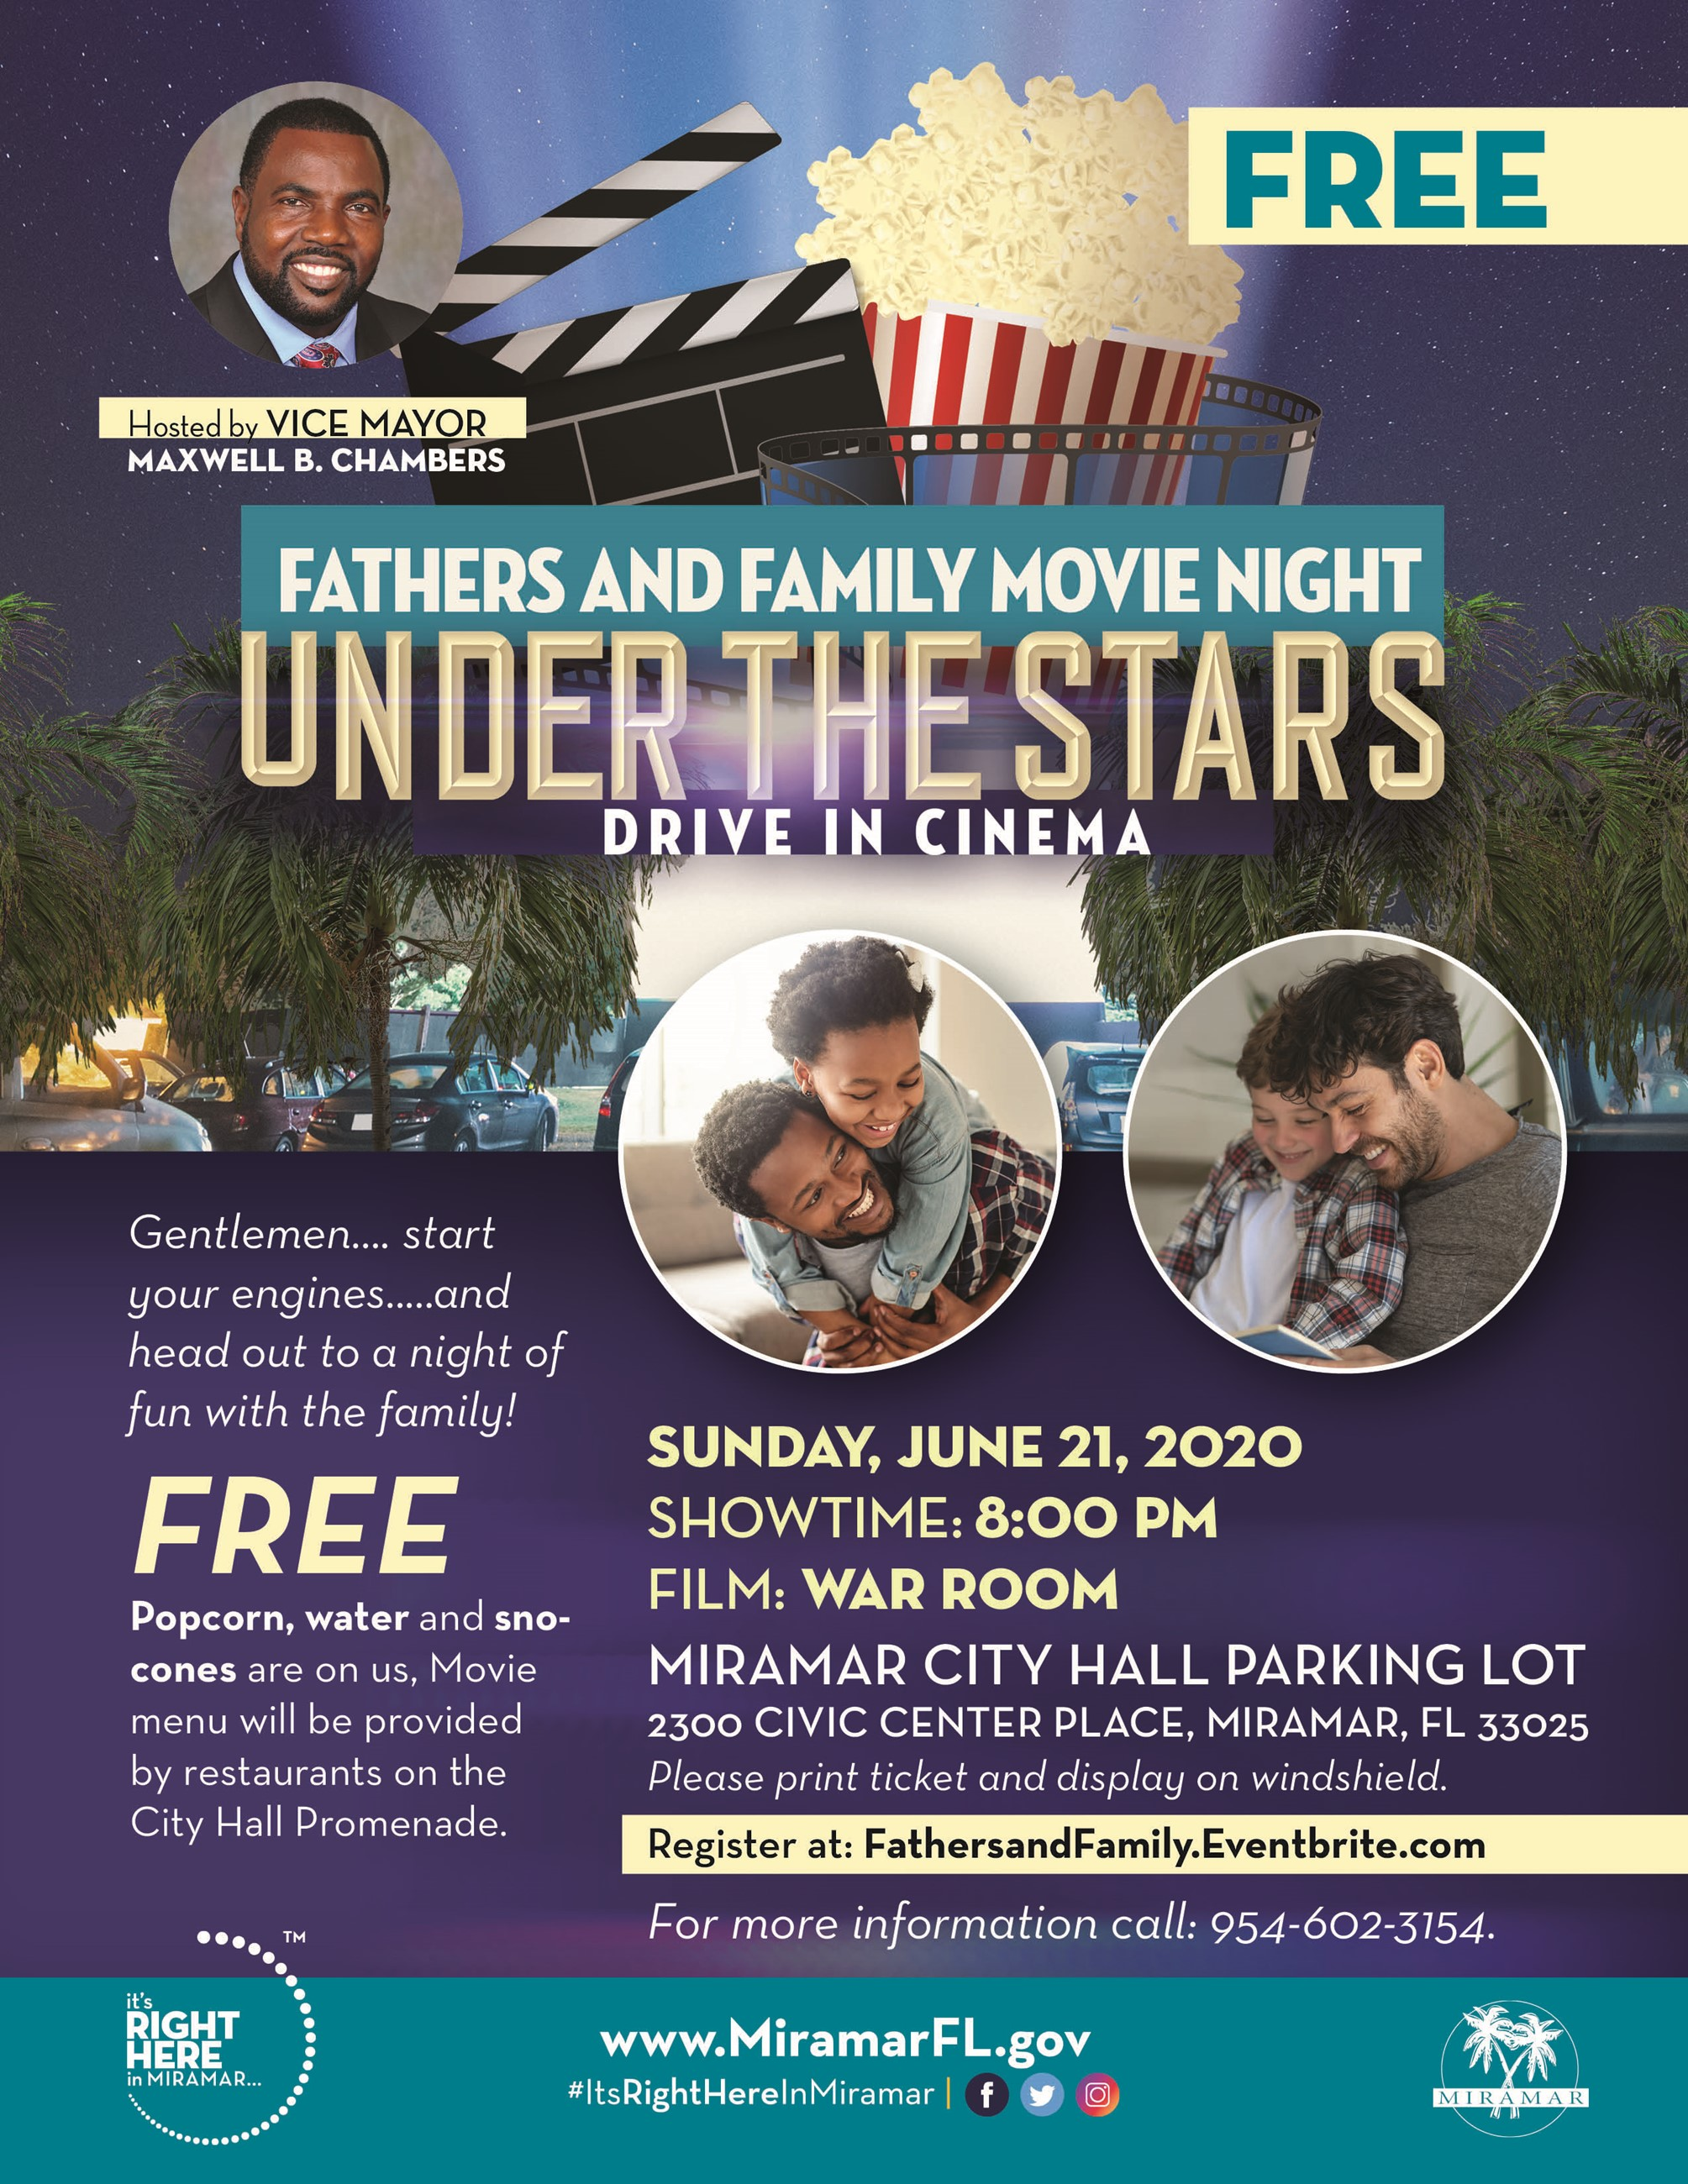 MOVIE NIGHT UNDER THE STARS_VM_CHAMBERS